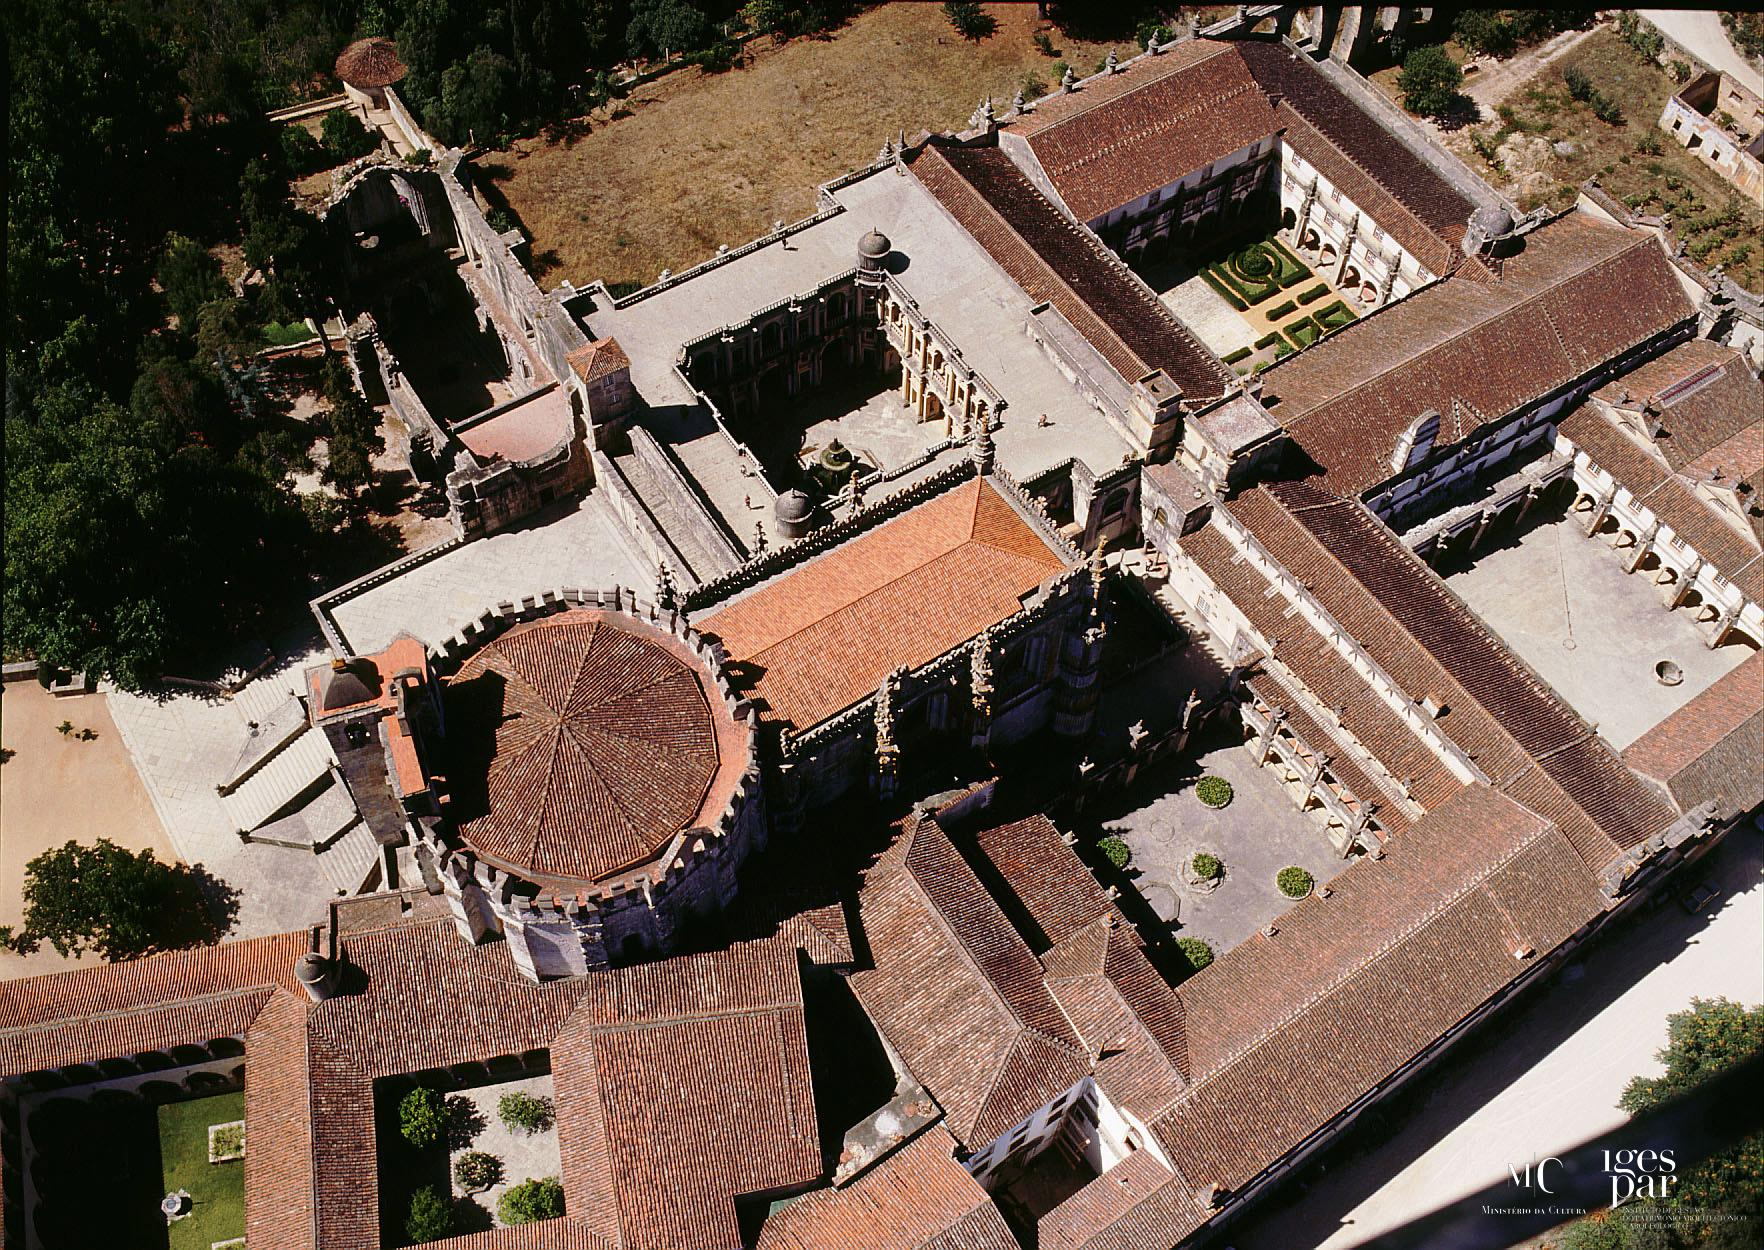 Convent of Christ - Convent of Christ